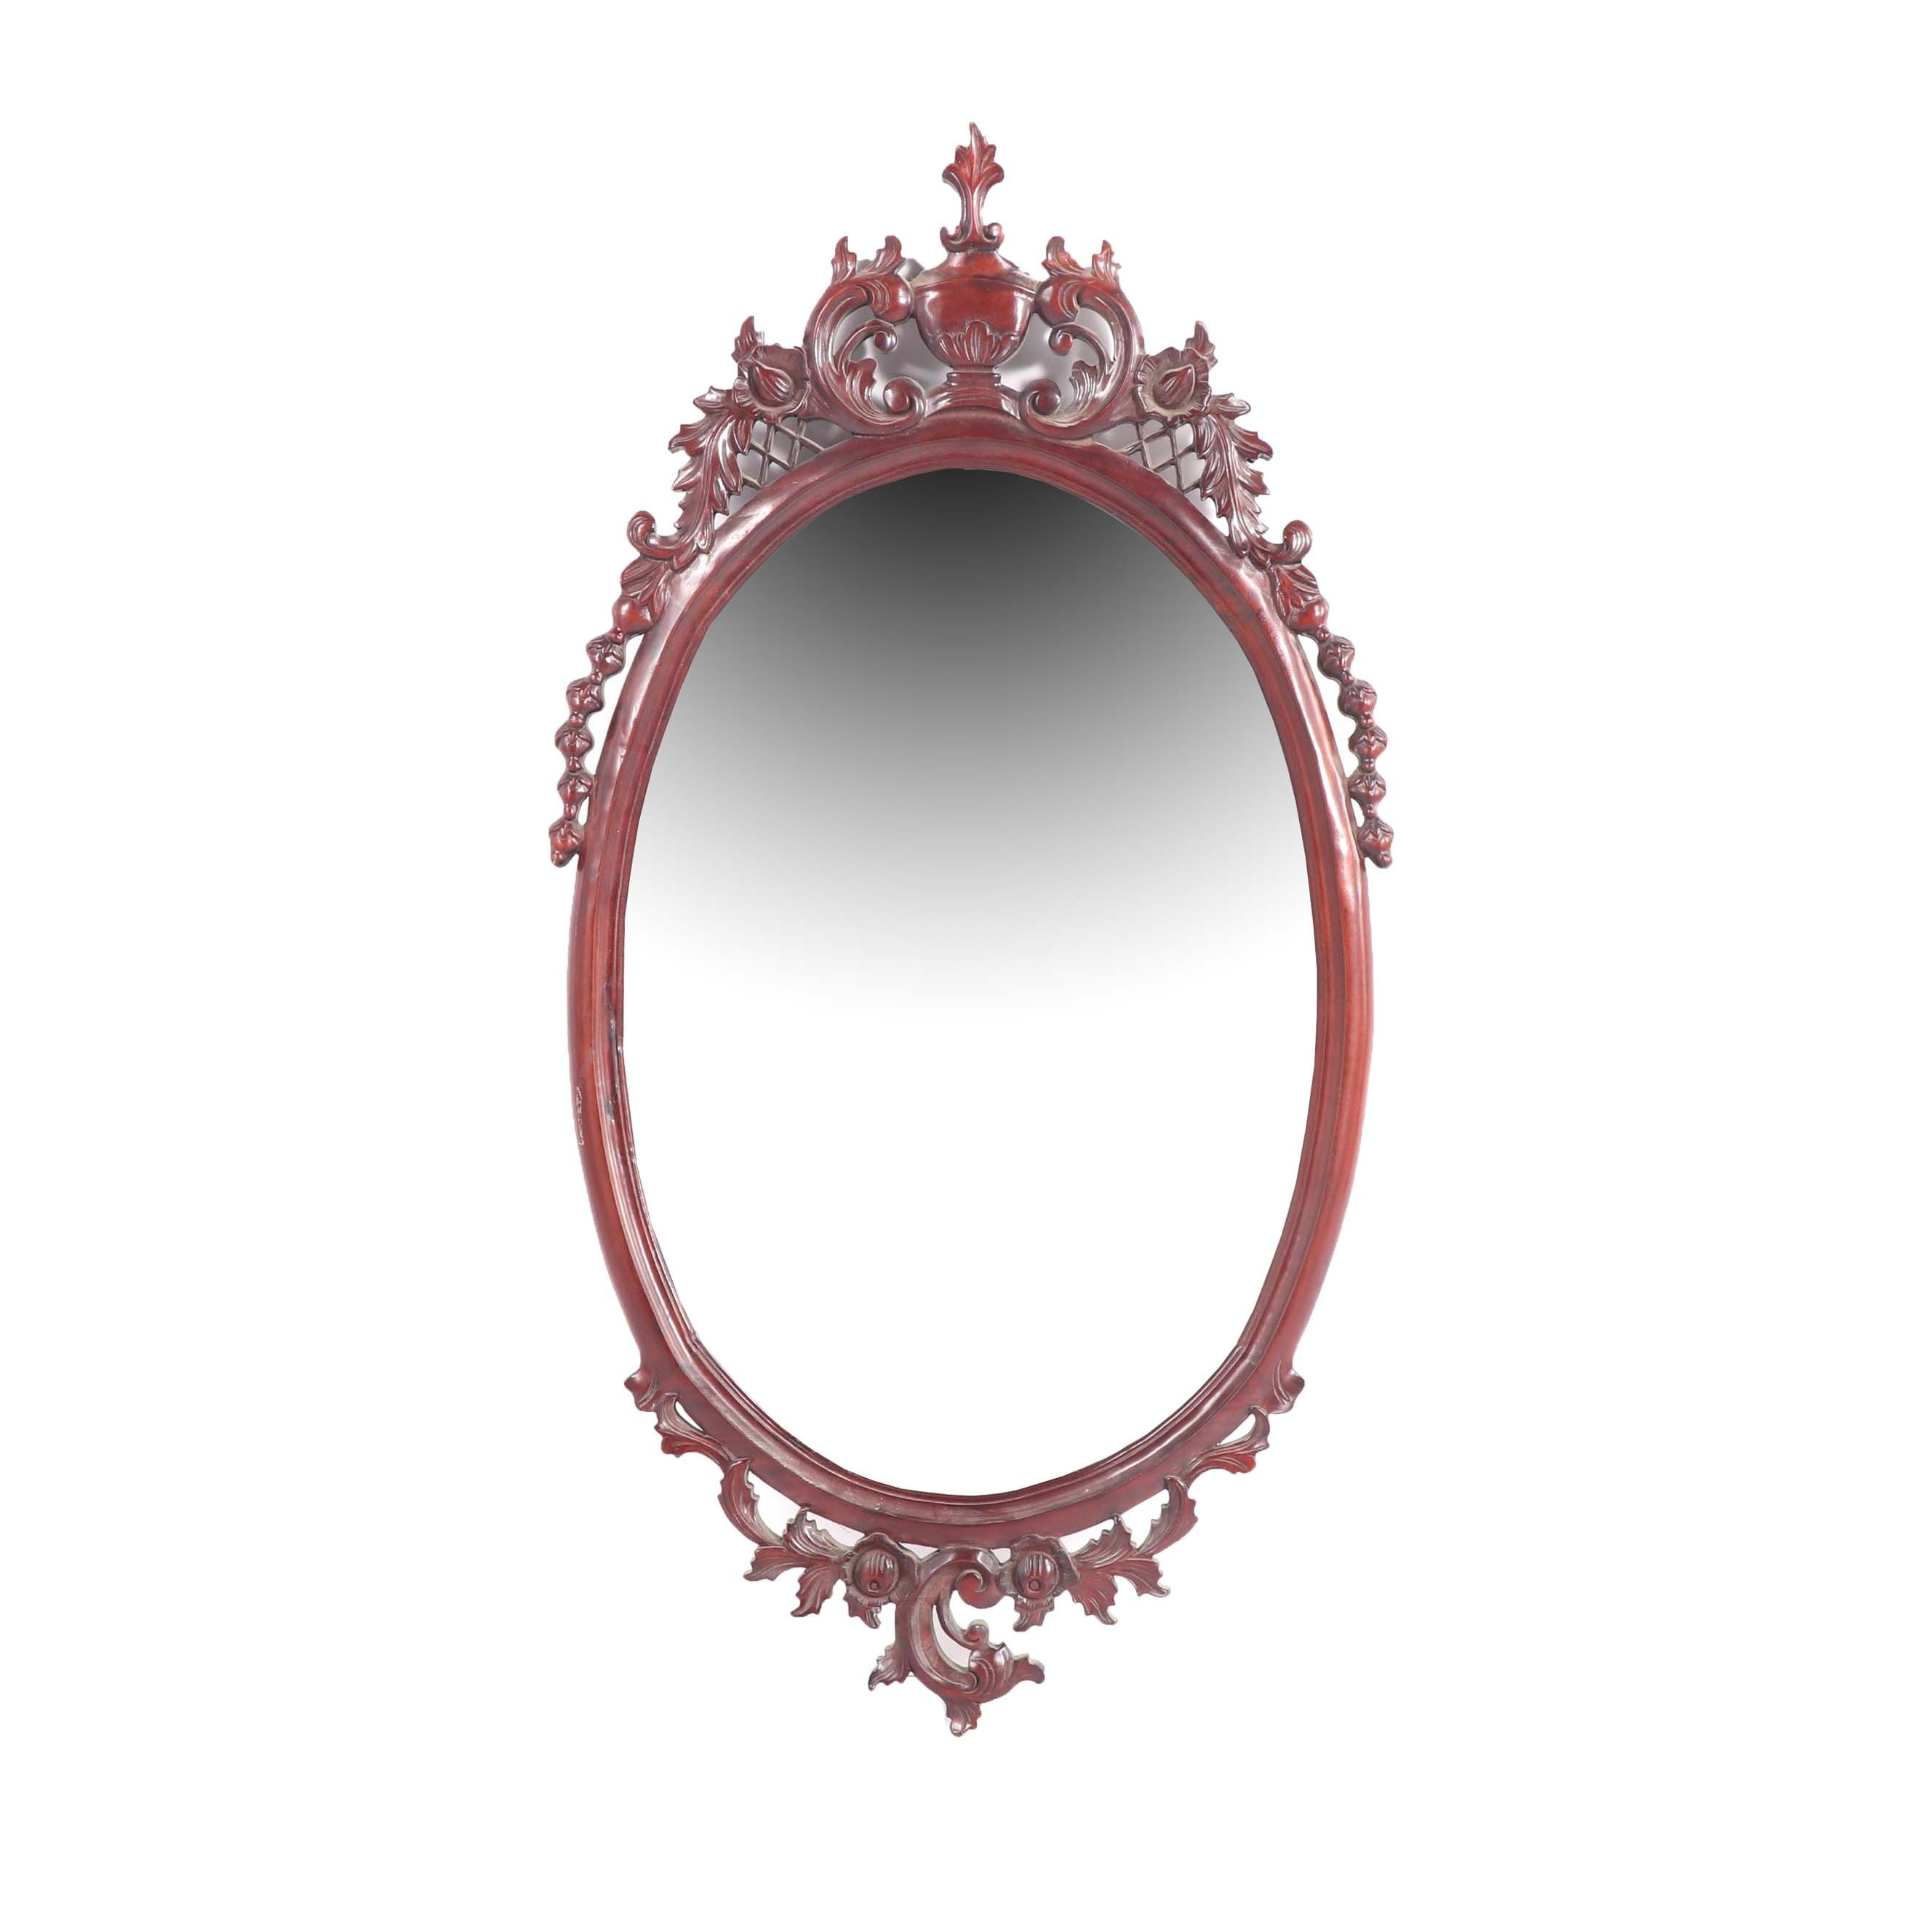 Rococo Revival Style Beveled Oval Wall Mirror